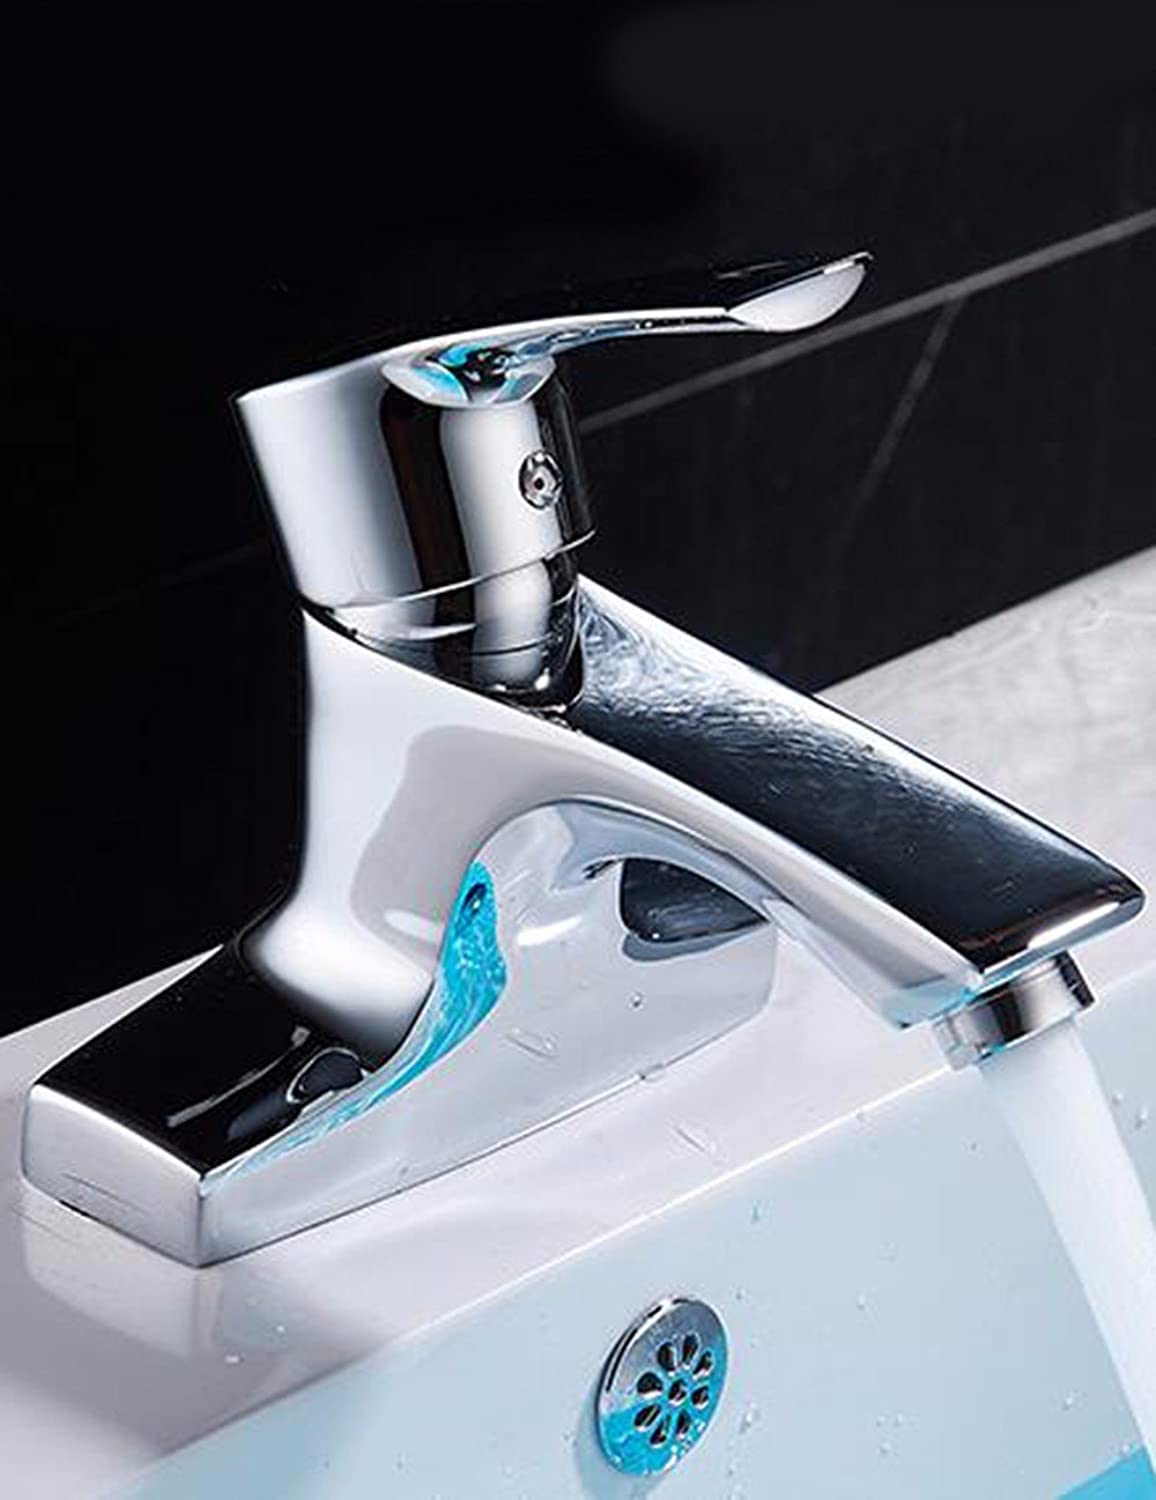 Hlluya Professional Sink Mixer Tap Kitchen Faucet Hot and Cold Basin Sinks Faucets single handle double-hole Faucet